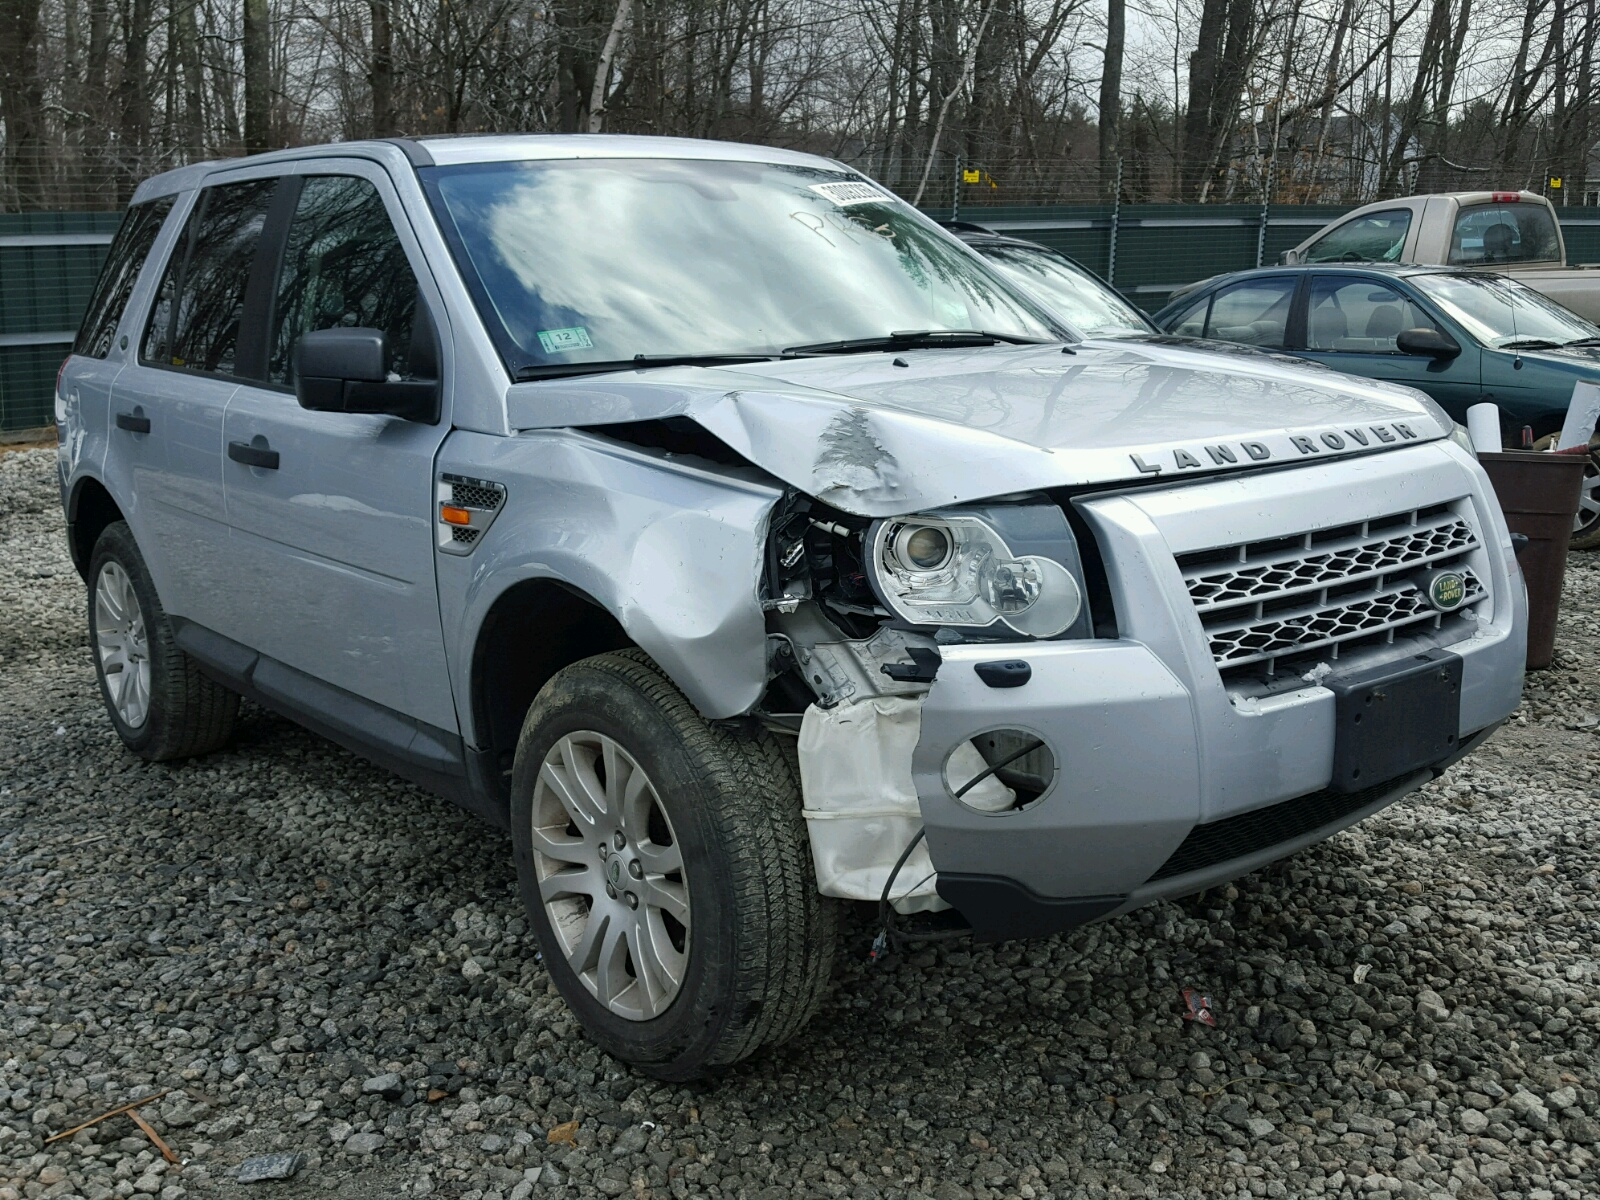 for carfinder en certificate sale rover salvage philadelphia online view tec landrover pa left lot copart auctions auto se in on land of black